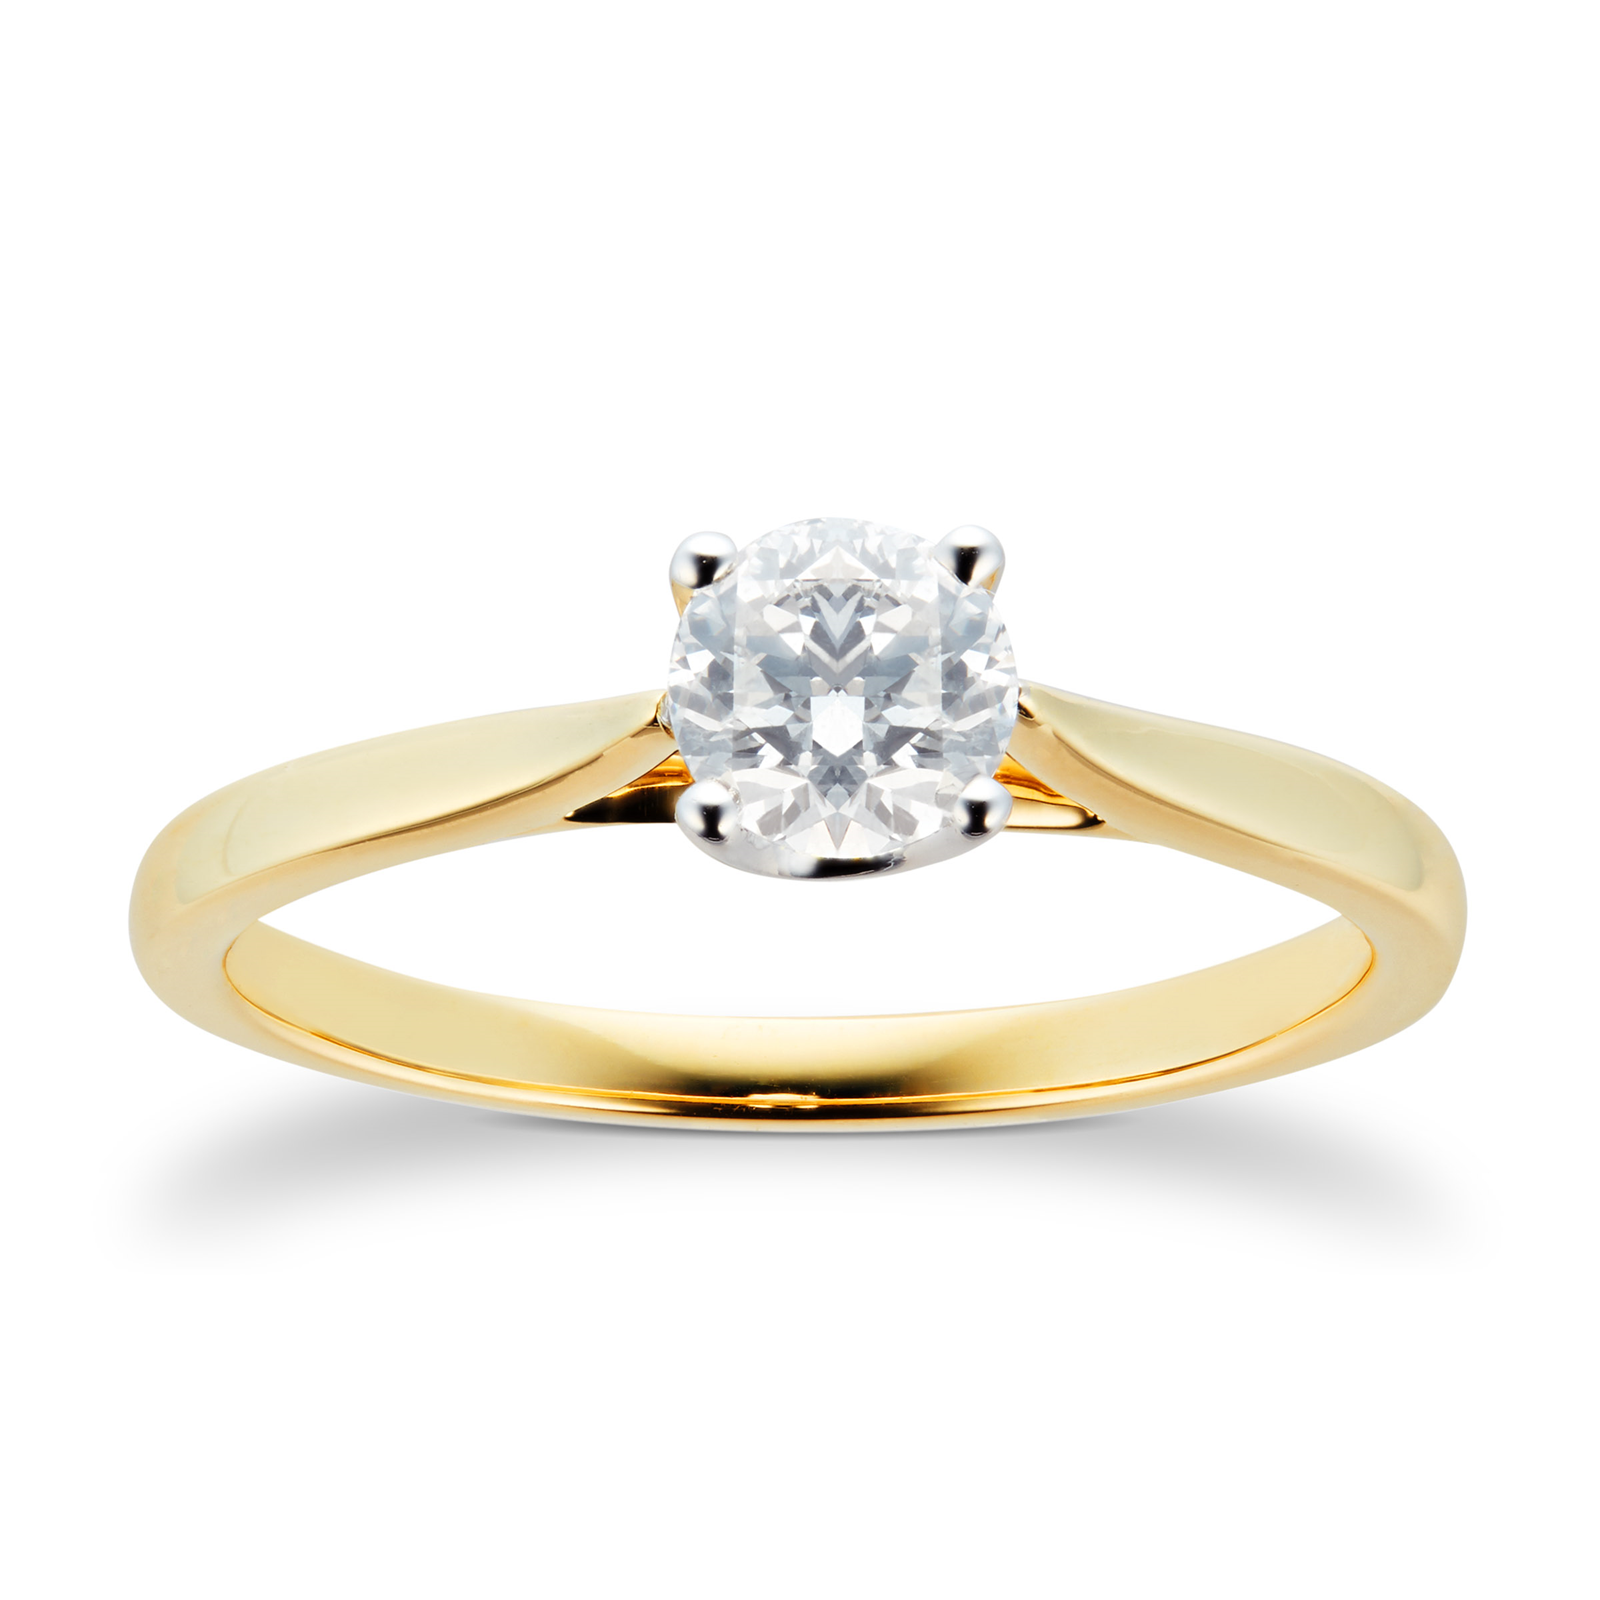 18ct Yellow Gold Brilliant Cut 0.50 Carat 88 Facet Diamond Ring